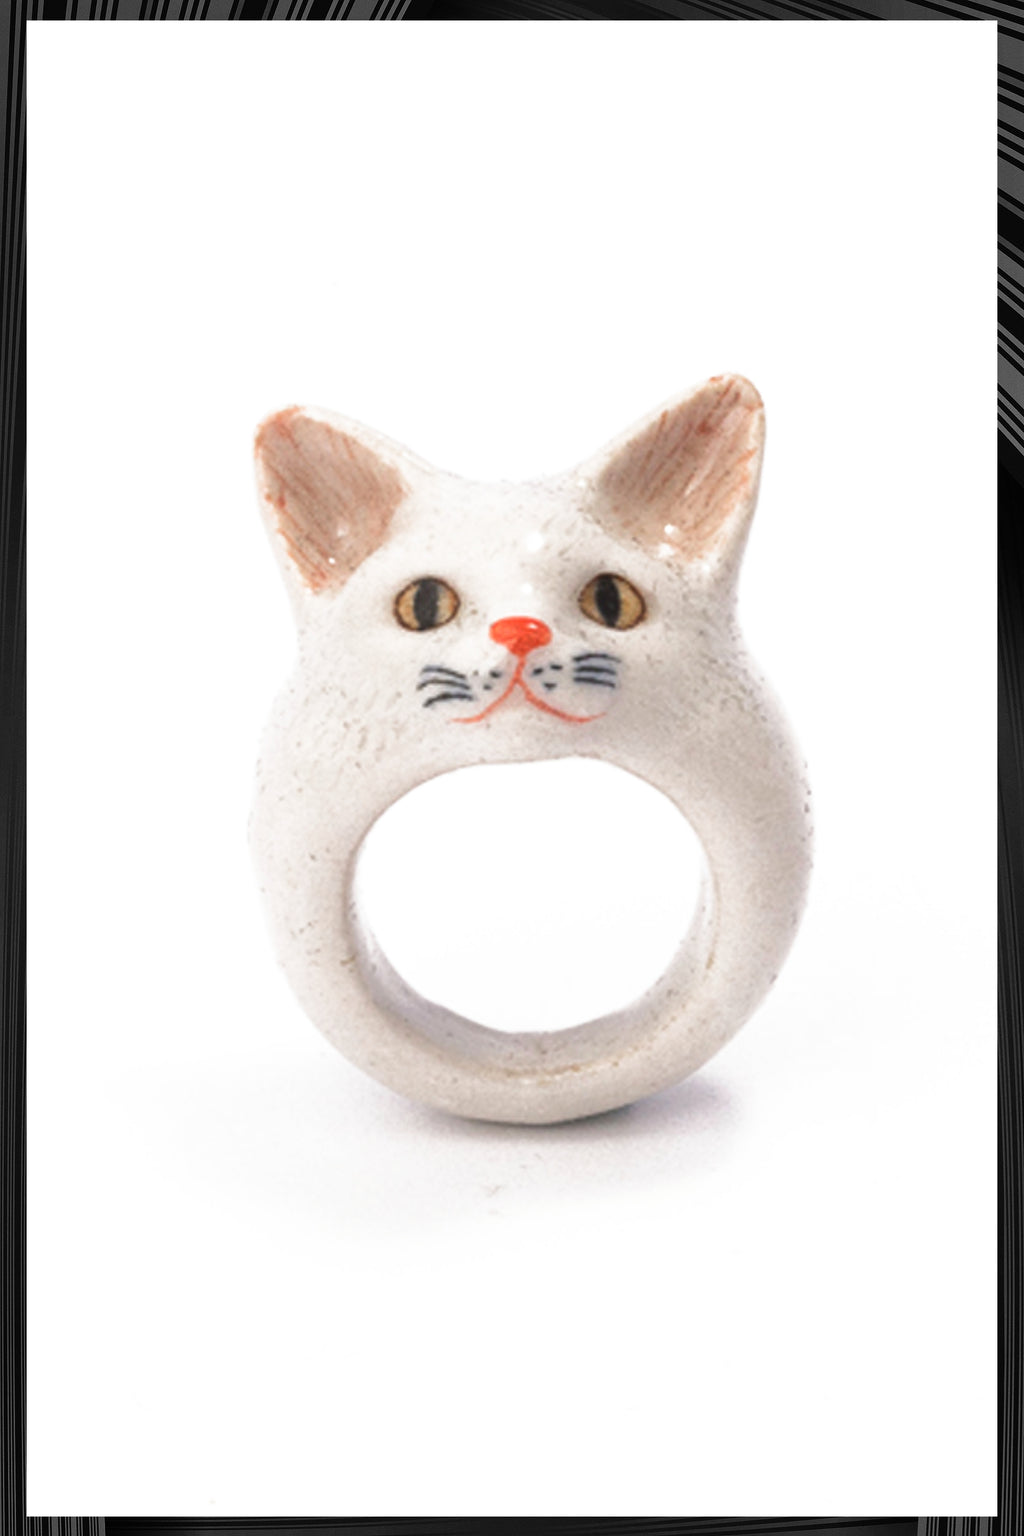 White Cat Ring | Free Delivery - Quick Shipping